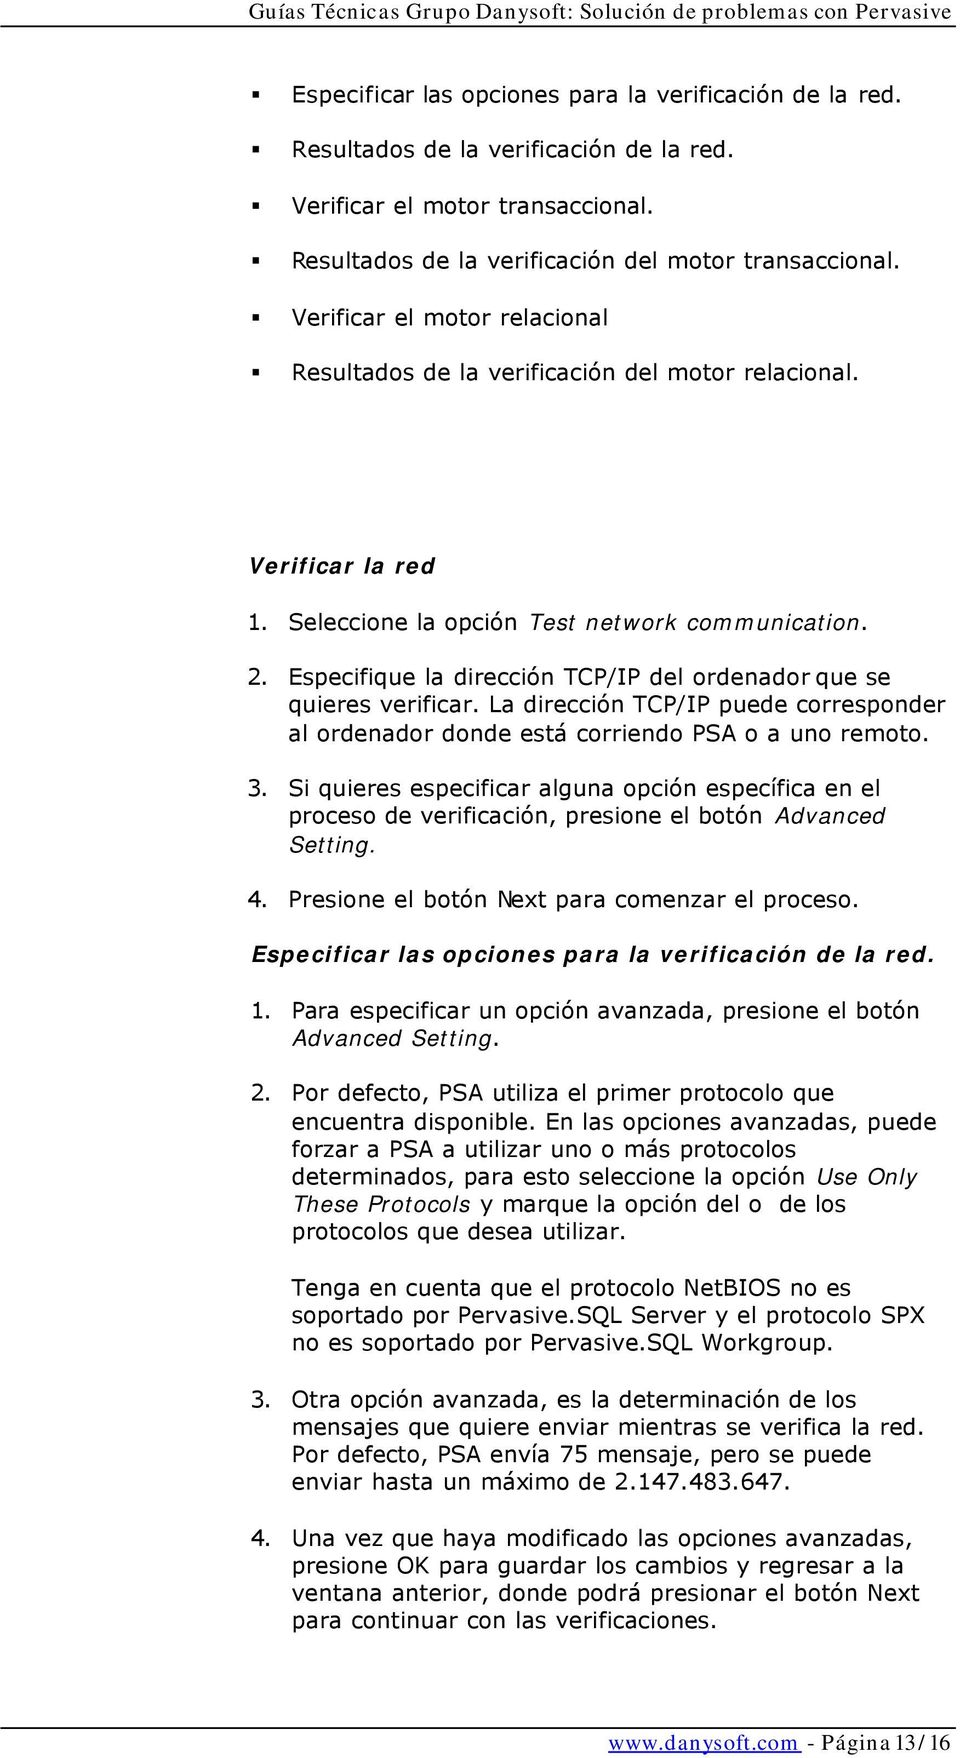 Seleccione la opción Test network communication. 2. Especifique la dirección TCP/IP del ordenador que se quieres verificar.